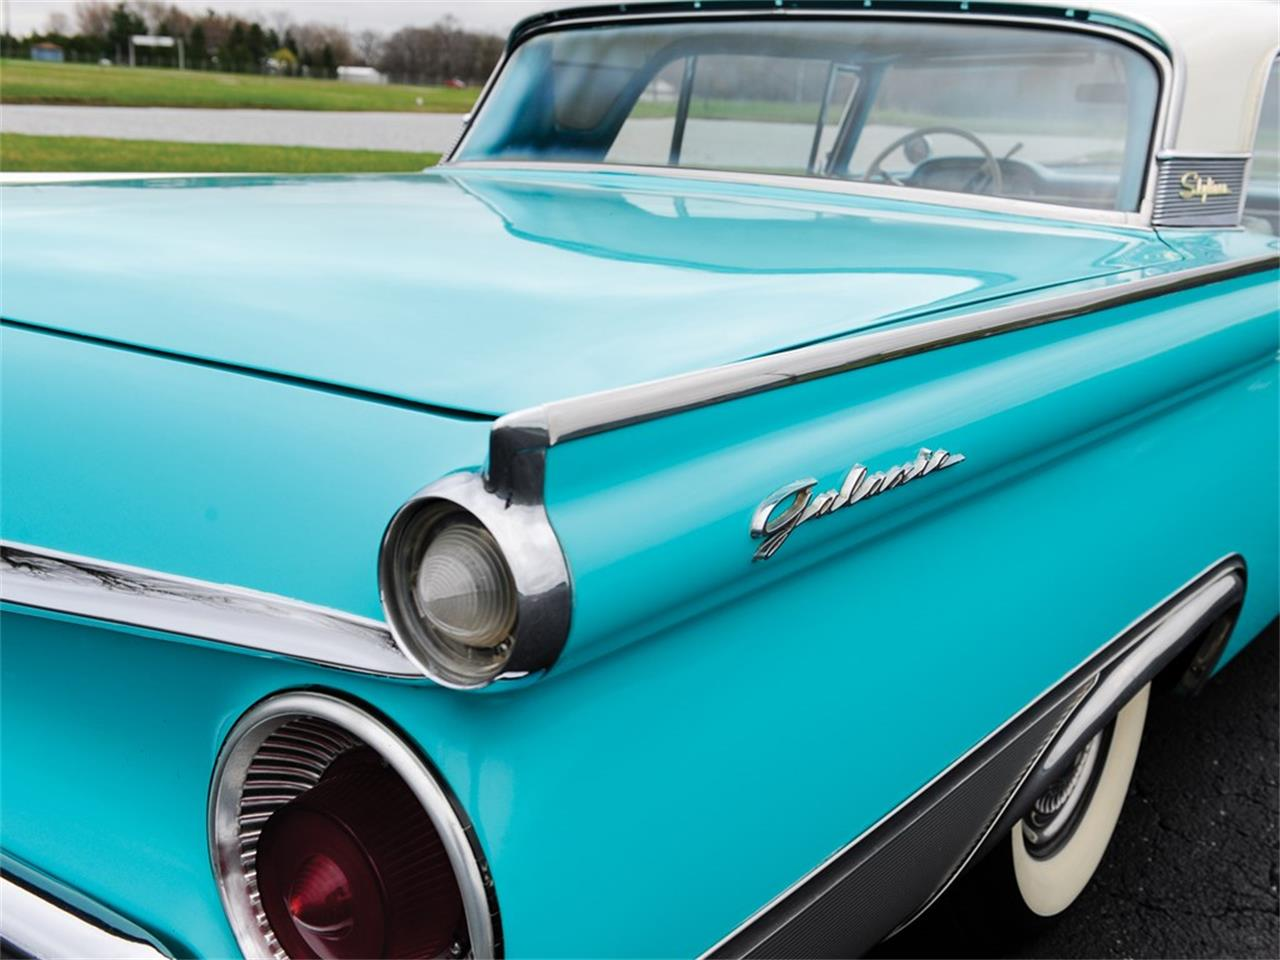 Large Picture of 1959 Galaxie Skyliner located in Indiana Auction Vehicle Offered by RM Sotheby's - Q12T